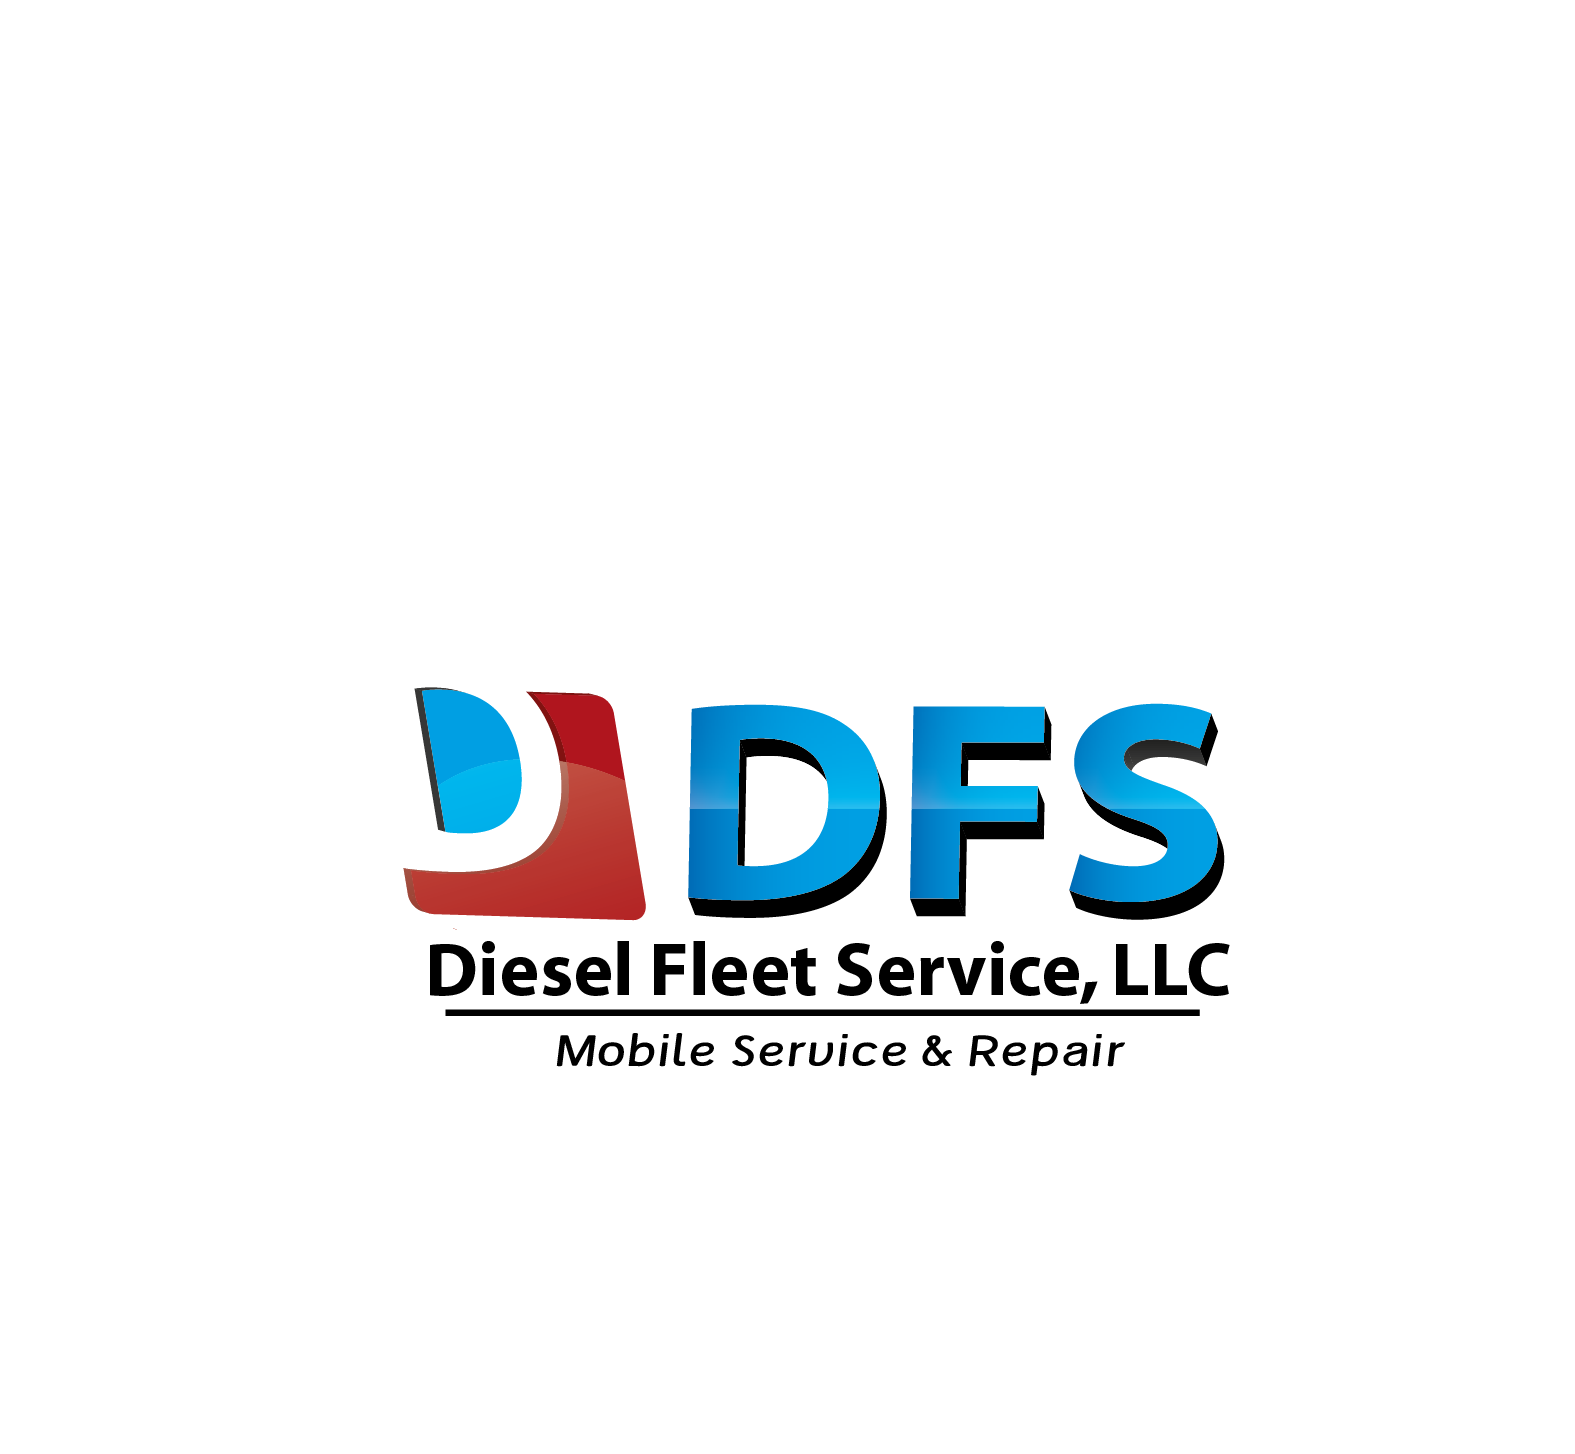 Logo Design by 354studio - Entry No. 88 in the Logo Design Contest Artistic Logo Design for Diesel Fleet Service, LLC.